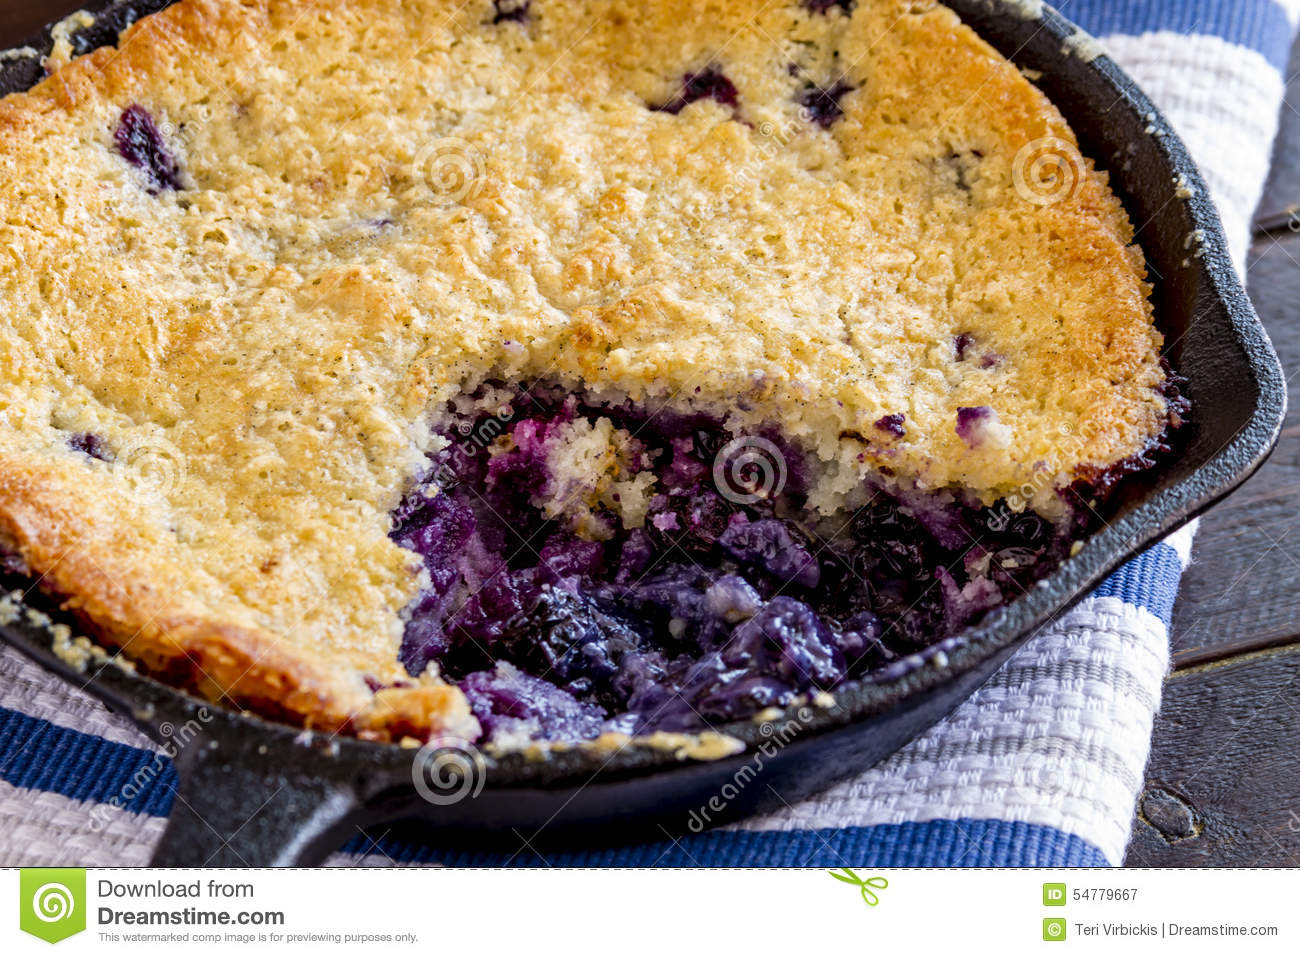 Blueberry Cobbler Baked In Cast Iron Skillet Stock Photo.